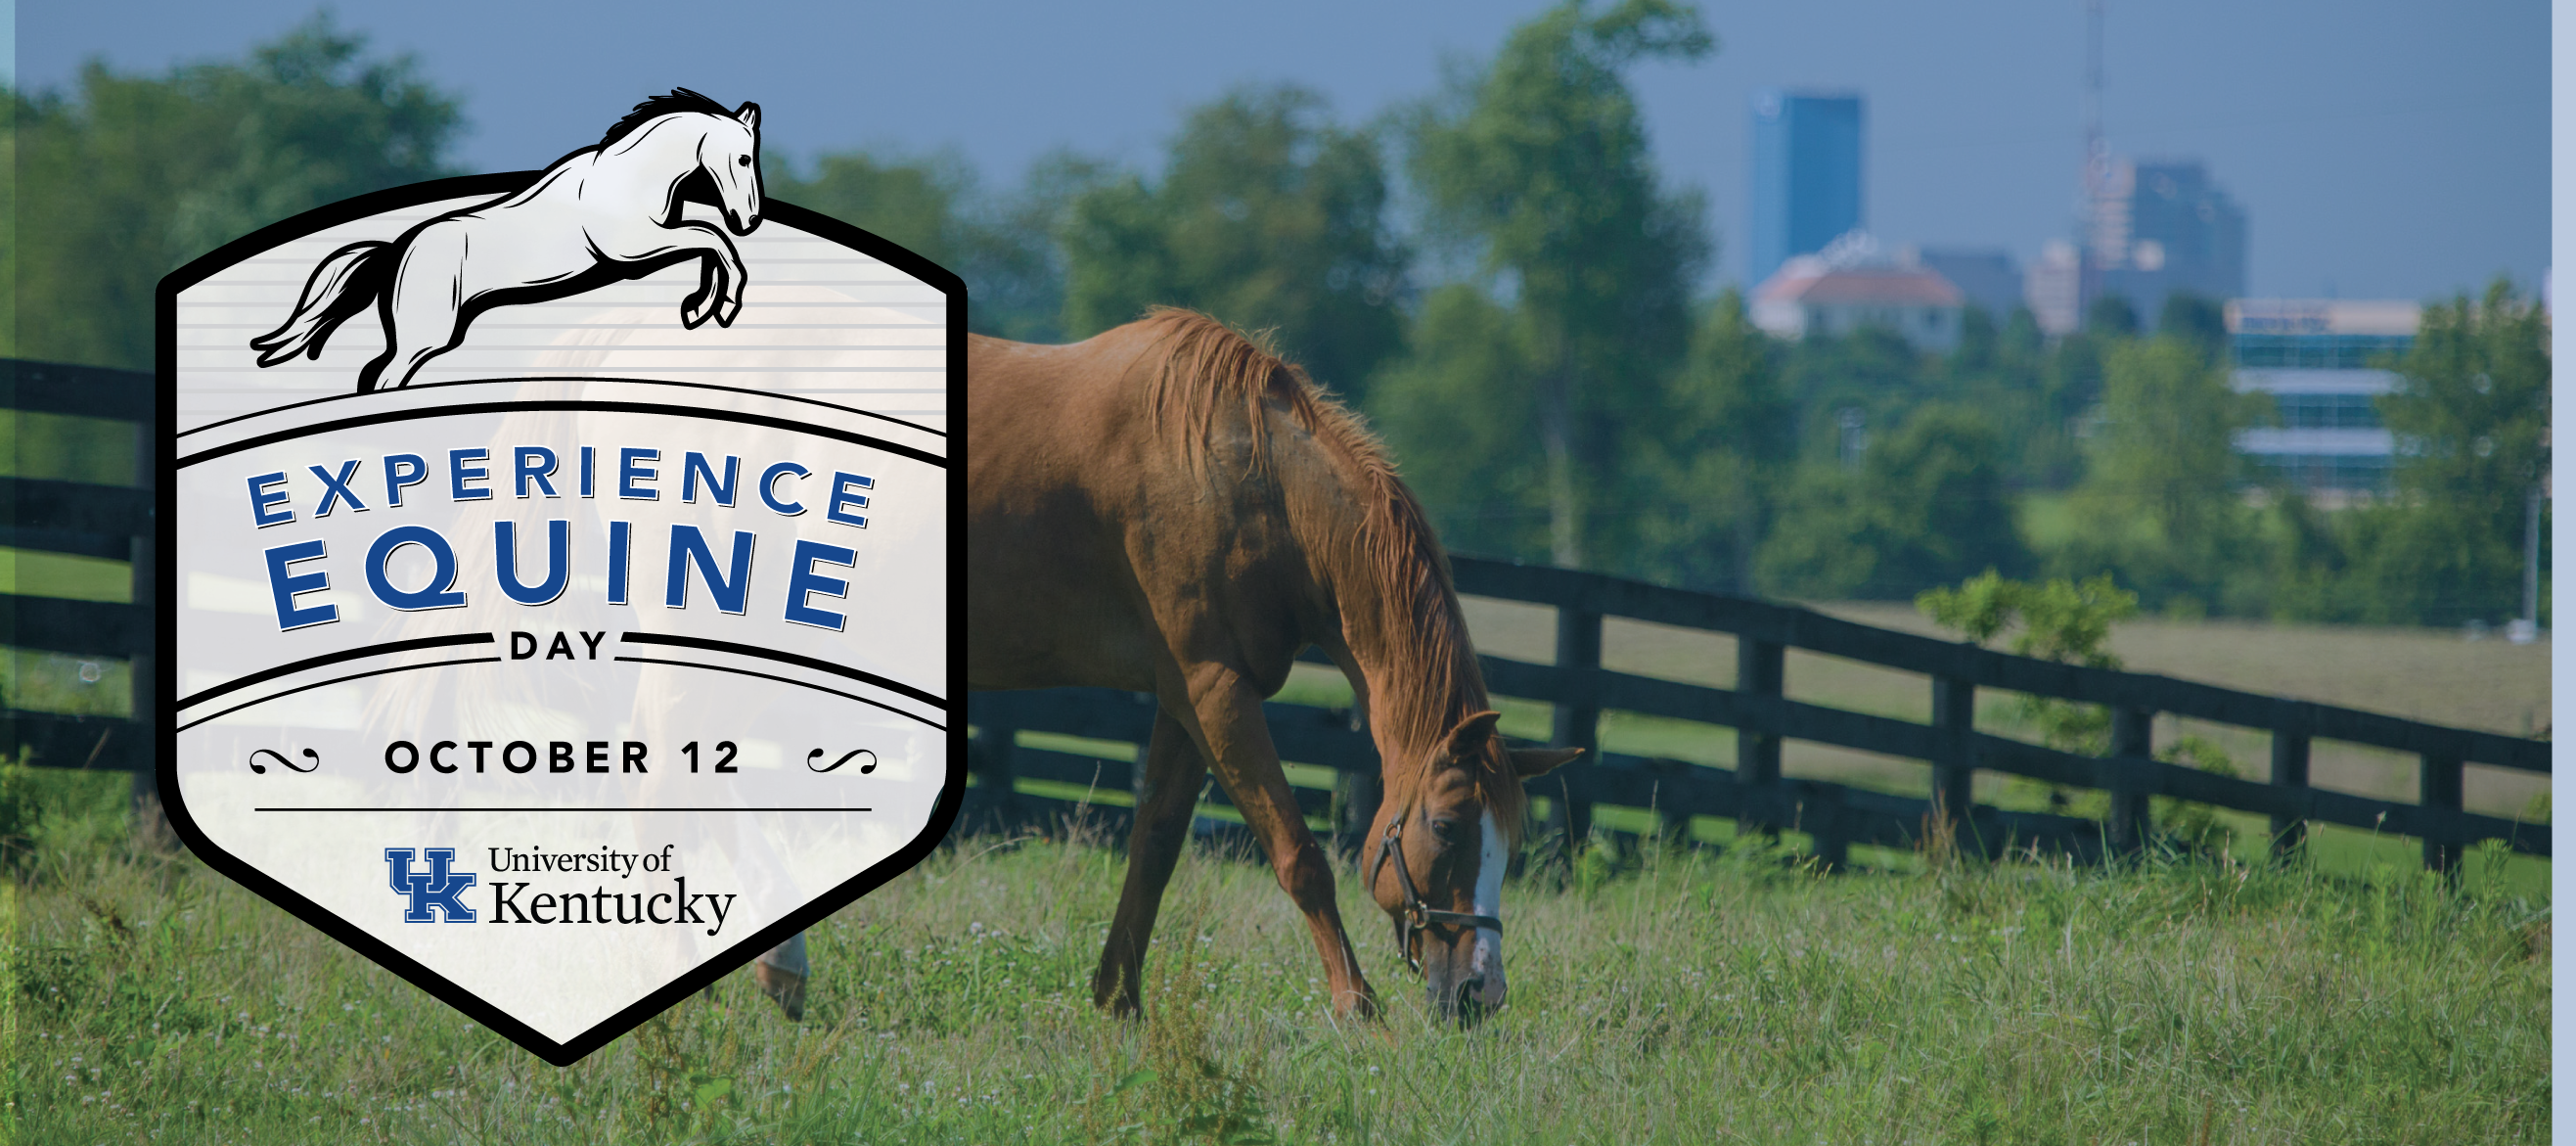 University of Kentucky Experience Equine Day